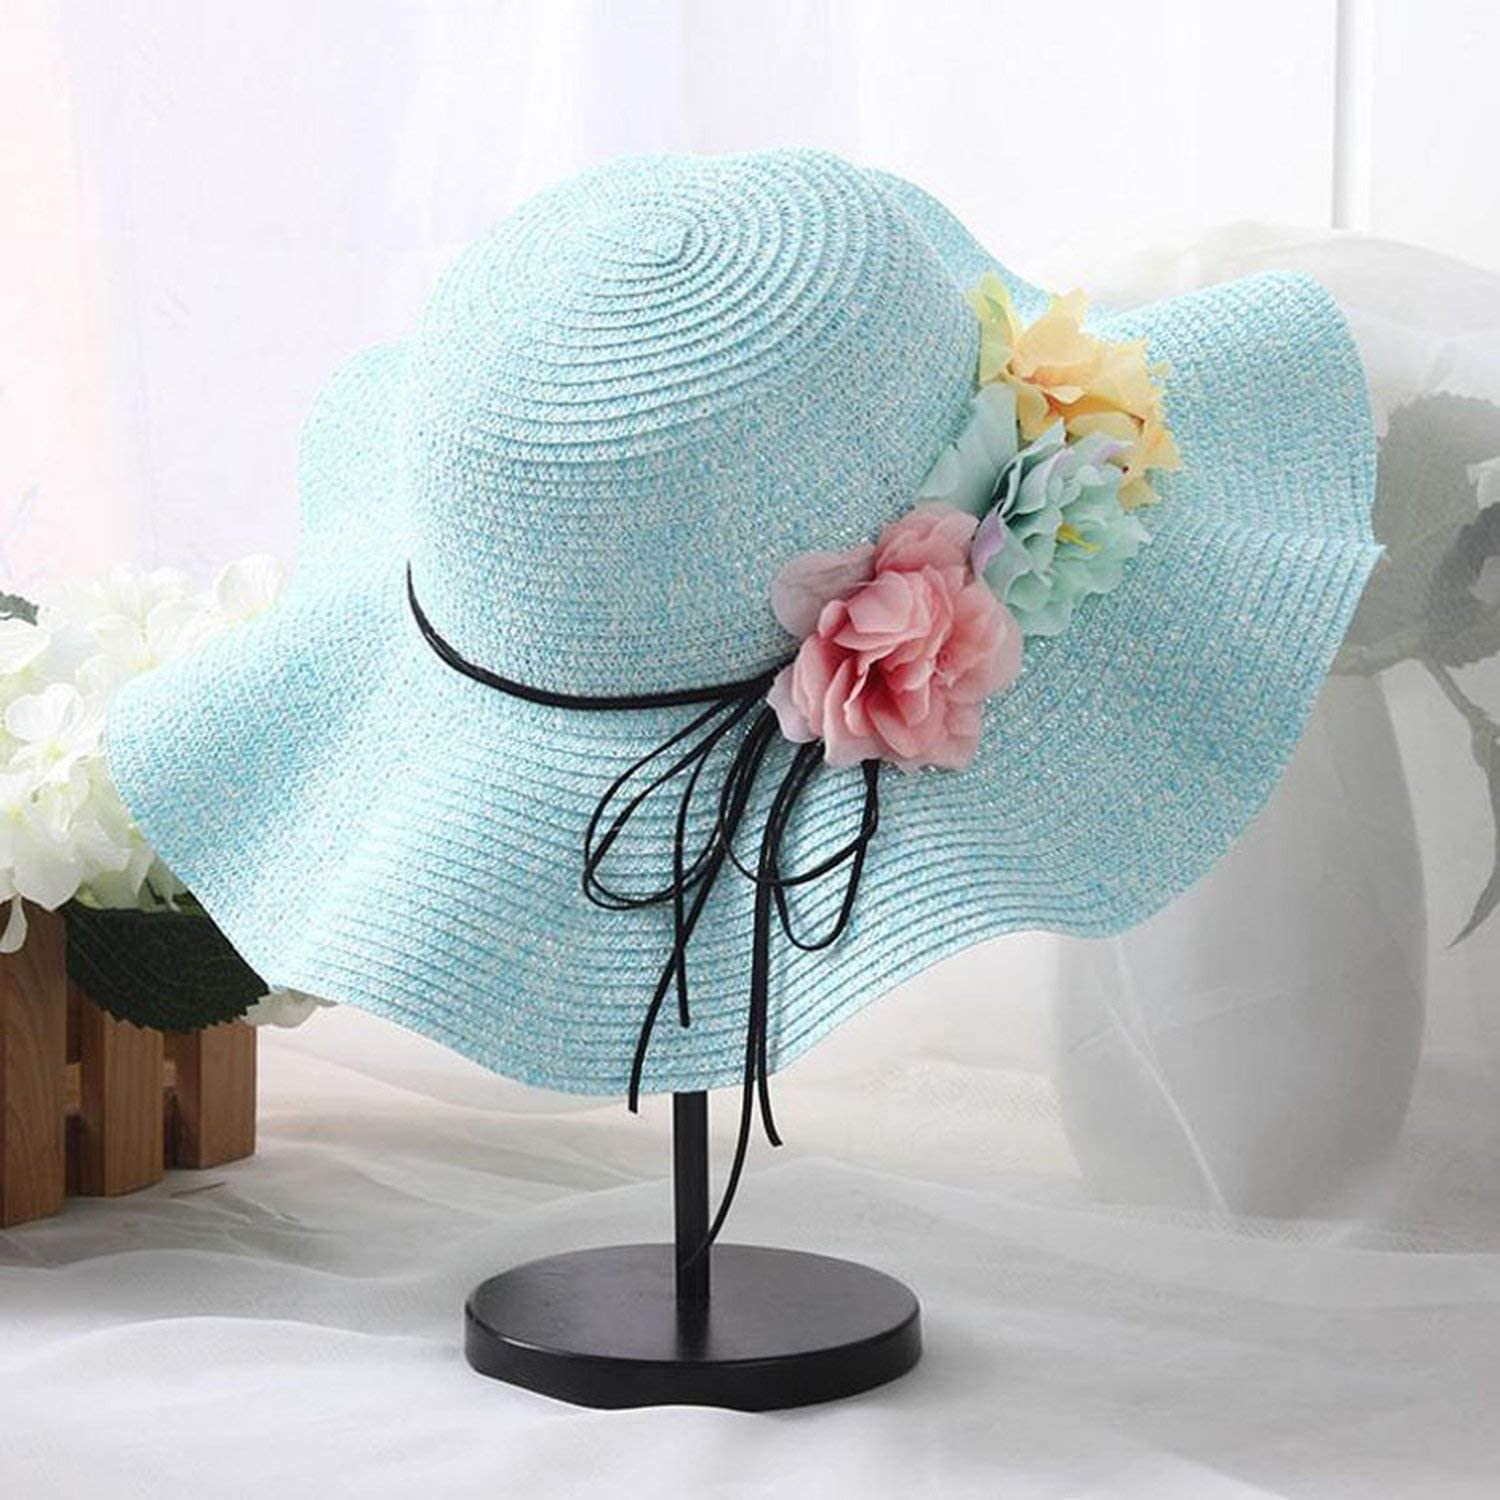 Lovely-Shop Retail 5 Colors Summer Children Flower Simple Wavy Large Brimmed Straw hat Boys Girls Beach Hats Parent-Child Sun hat,Light Pink,for Kids